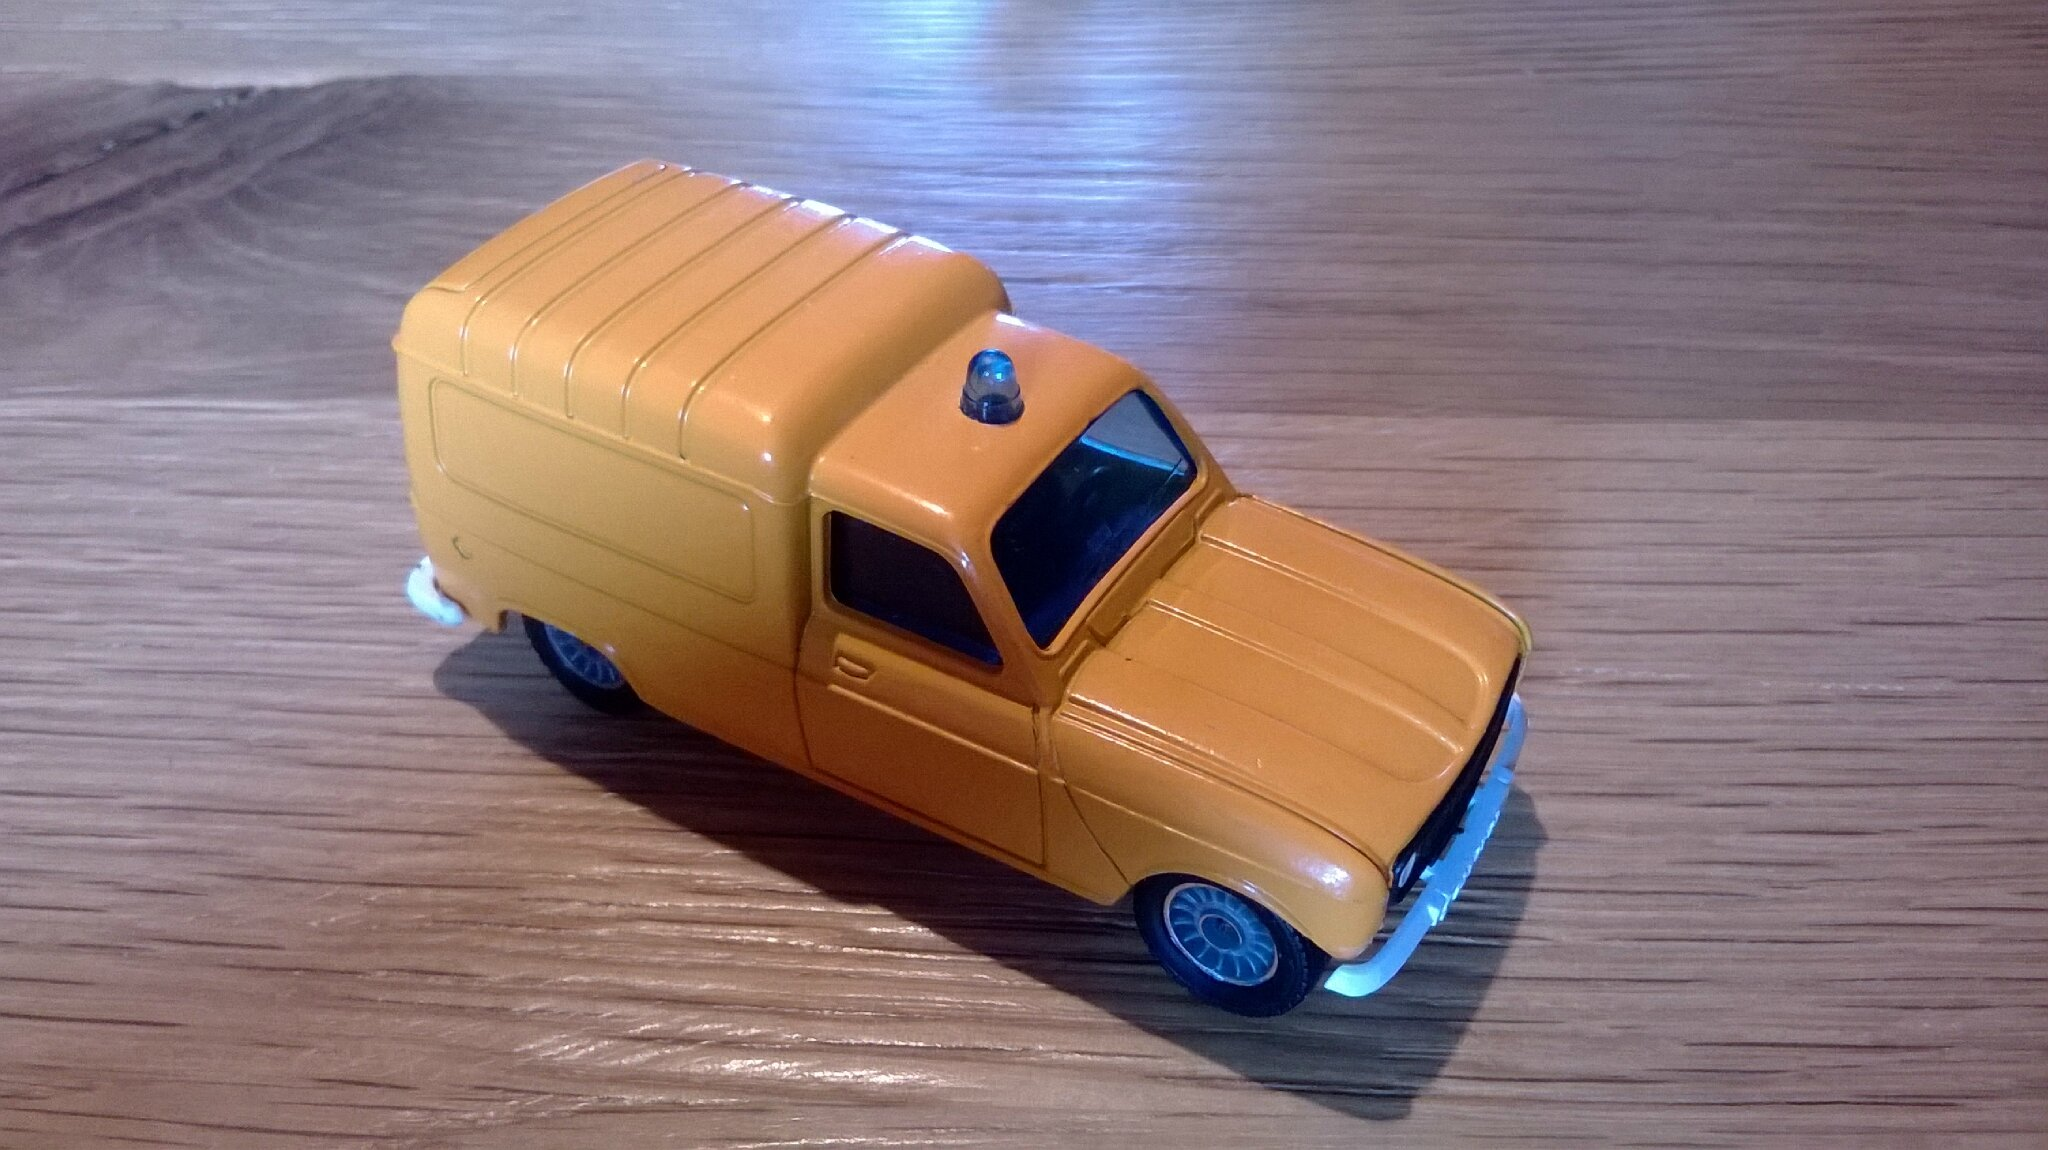 1325_Renault 4 Fourgonnette FLYCO_02